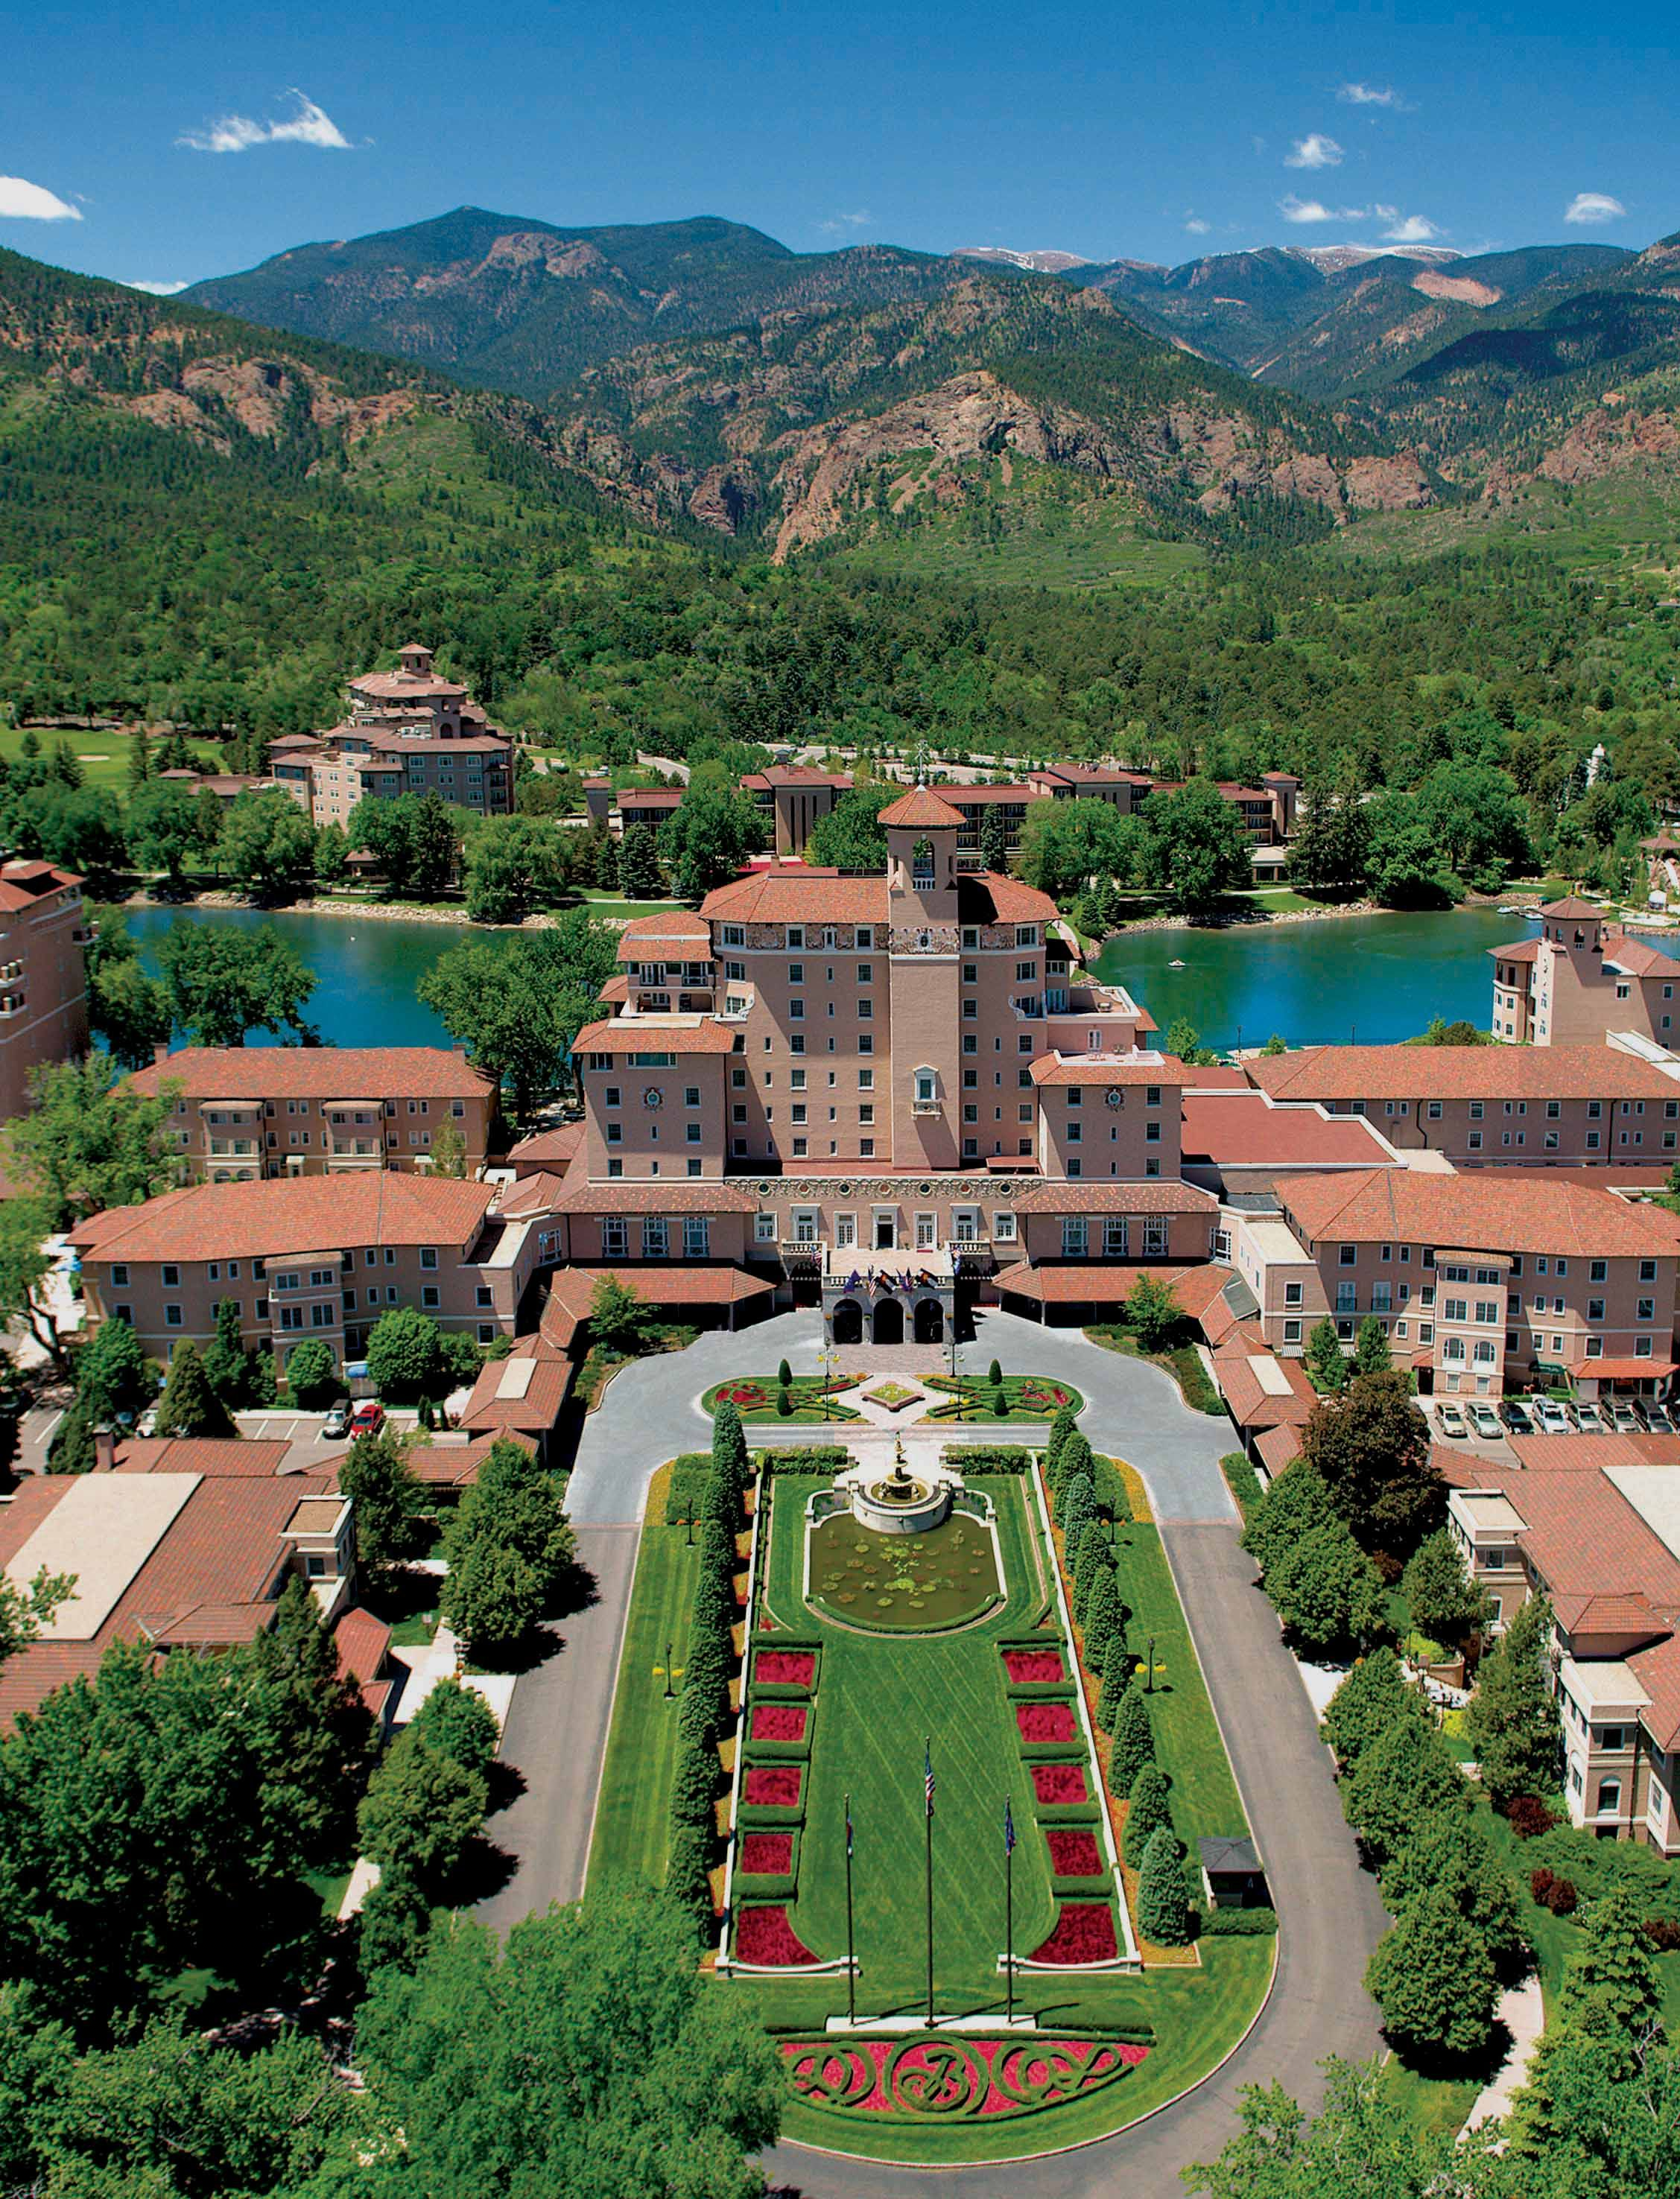 luxury colorado resorts colorado hotels the broadmoor broadmoor colorado springs family resorts broadmoor hotel broadmoor colorado springs